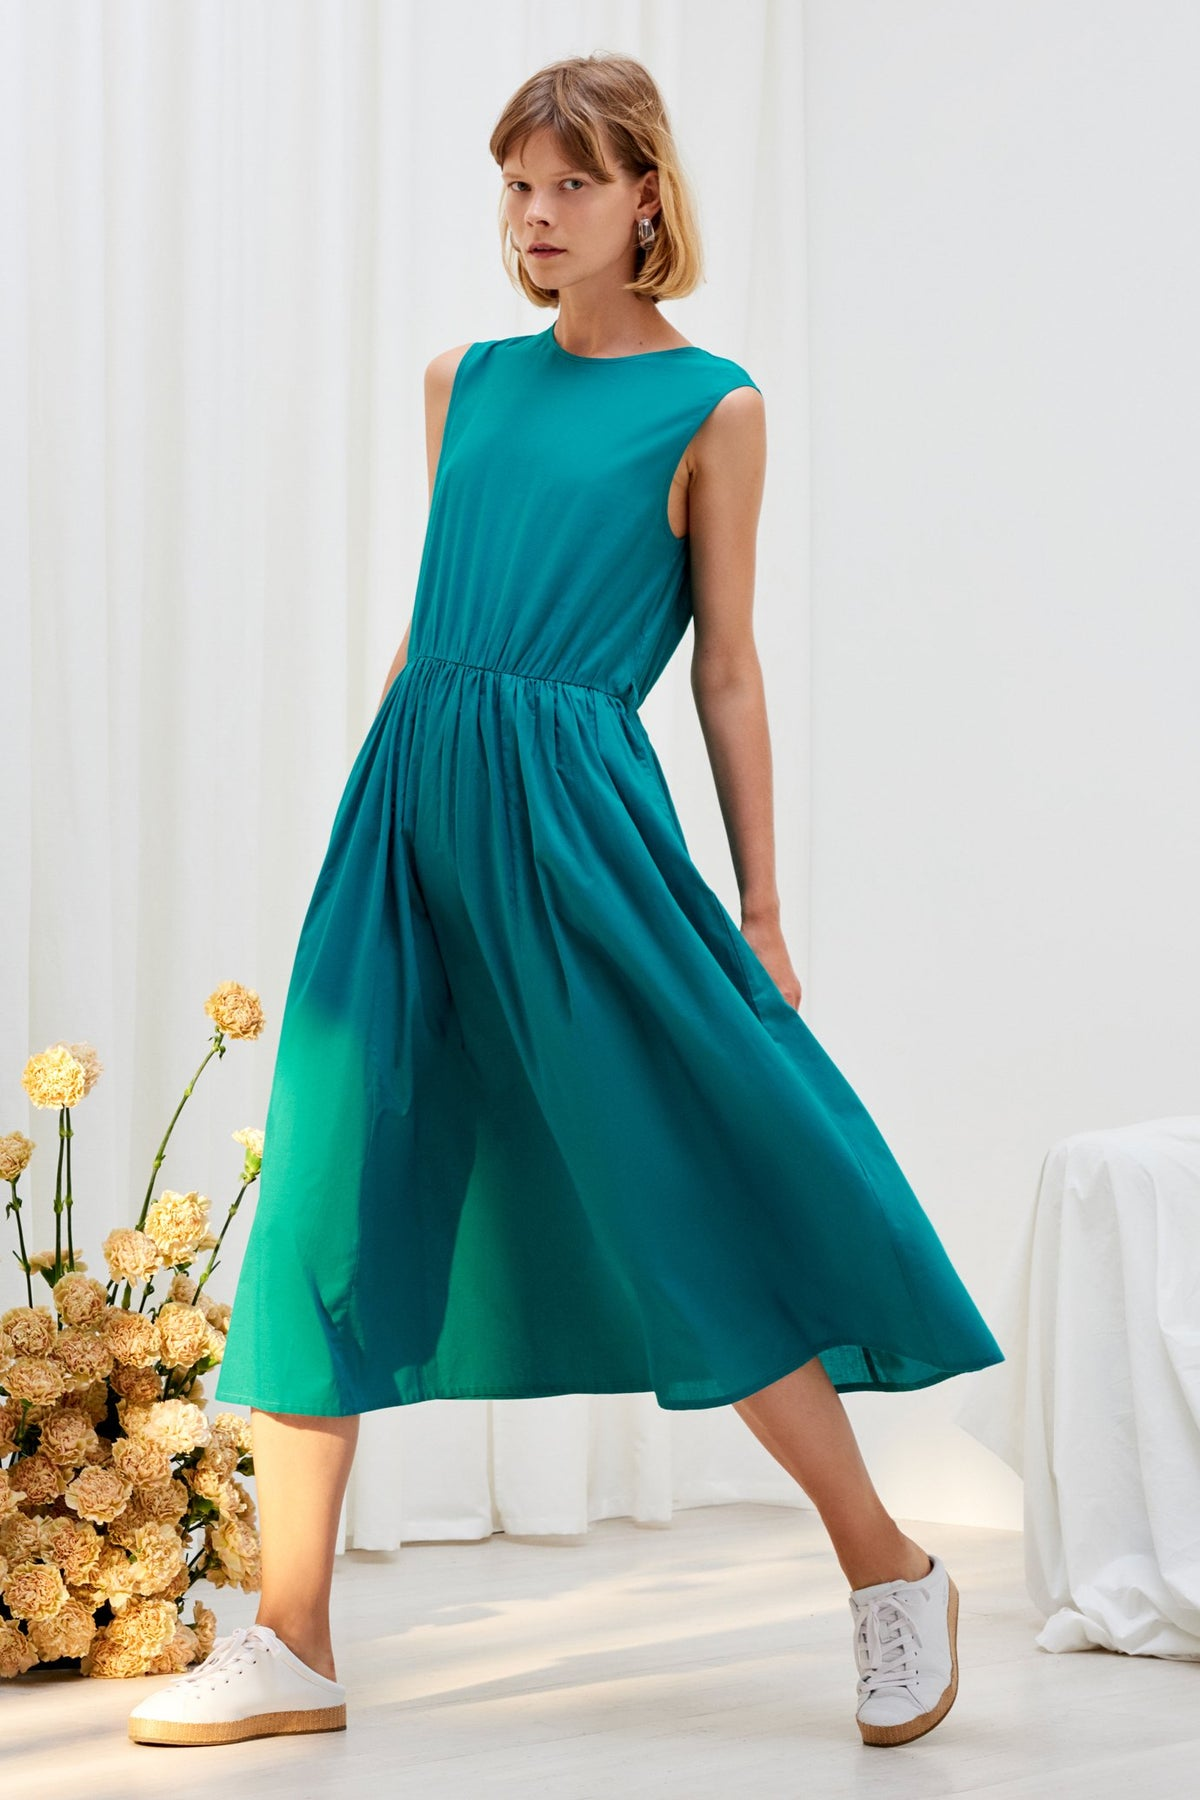 Kowtow stockists Echo Dress Emerald Organic Fairtrade Ethical